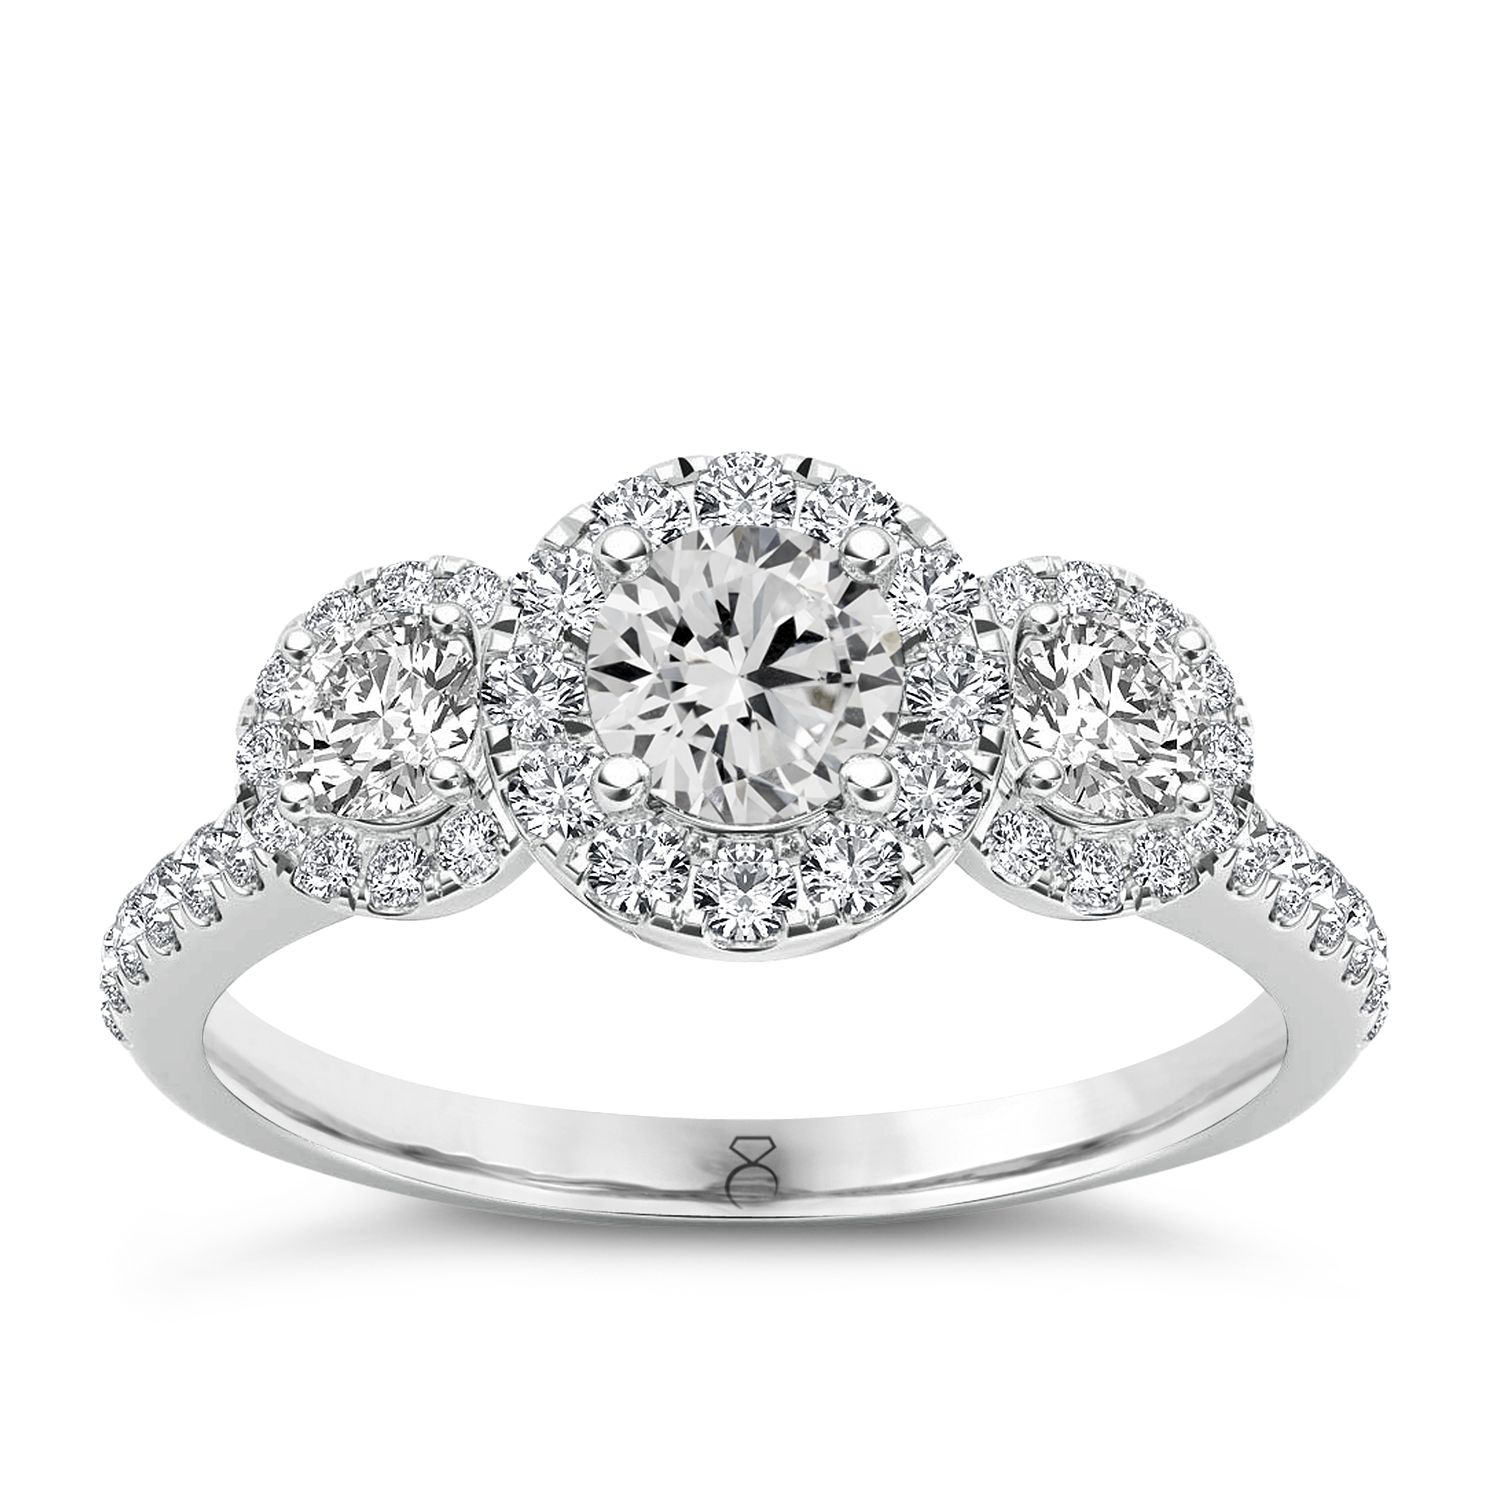 The Diamond Story 18ct White Gold 1ct Diamond Halo Ring - Product number 4802357